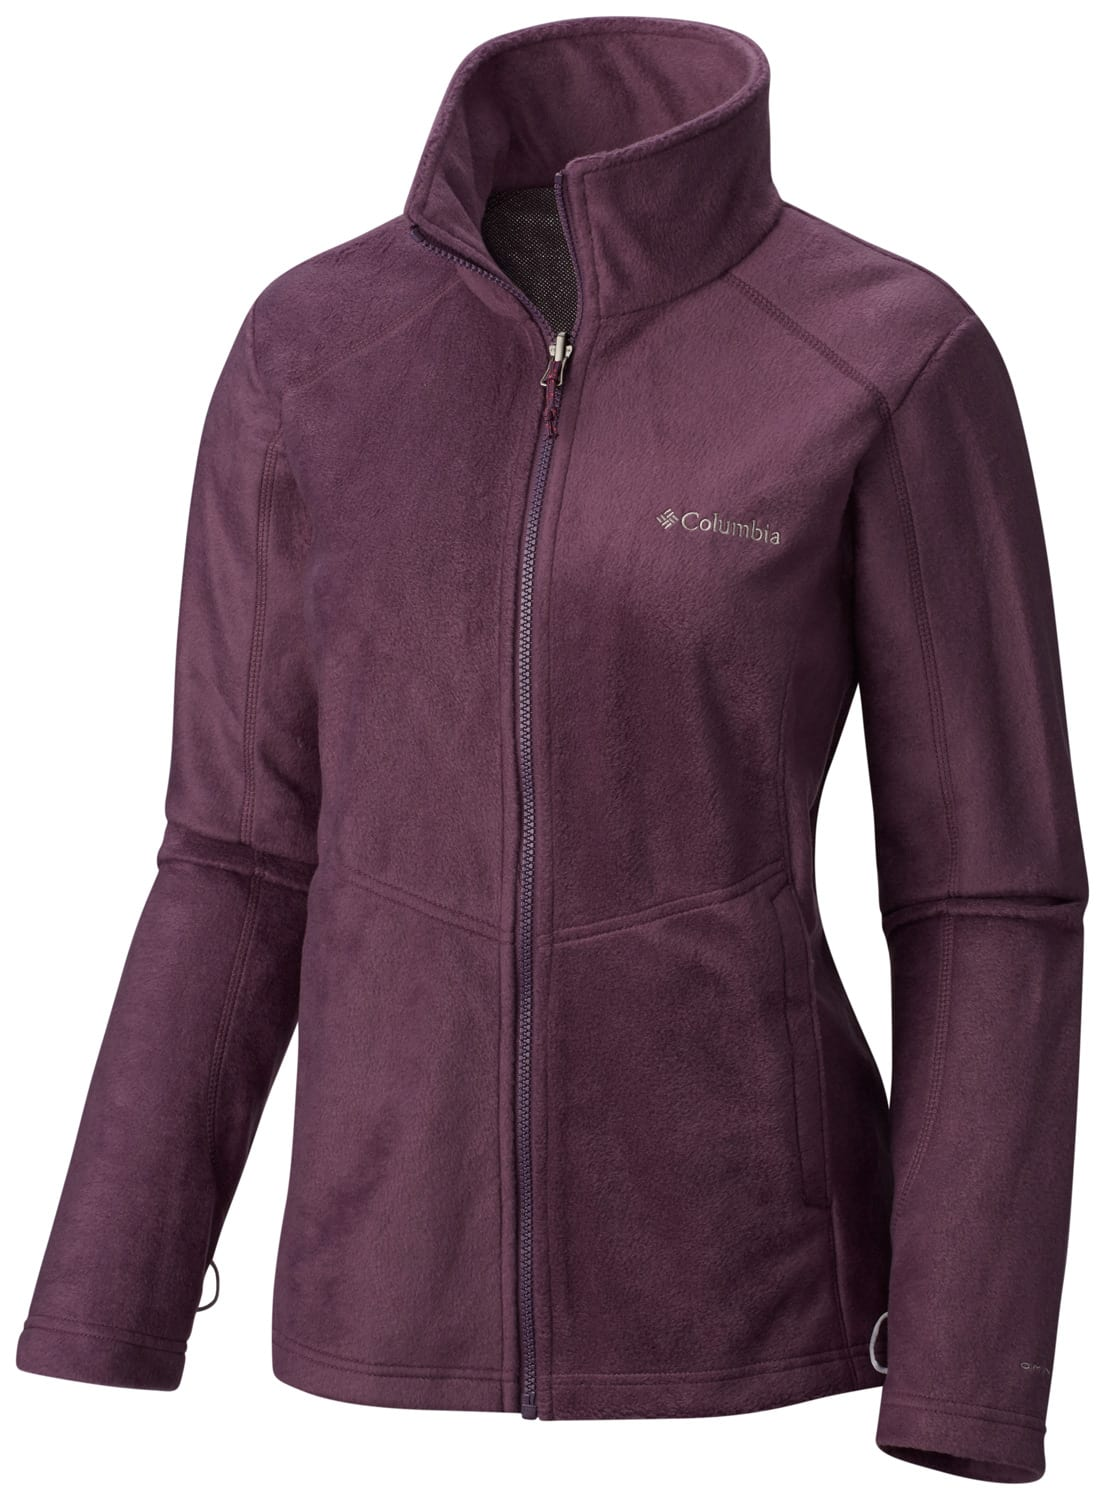 Columbia jackets for women on sale